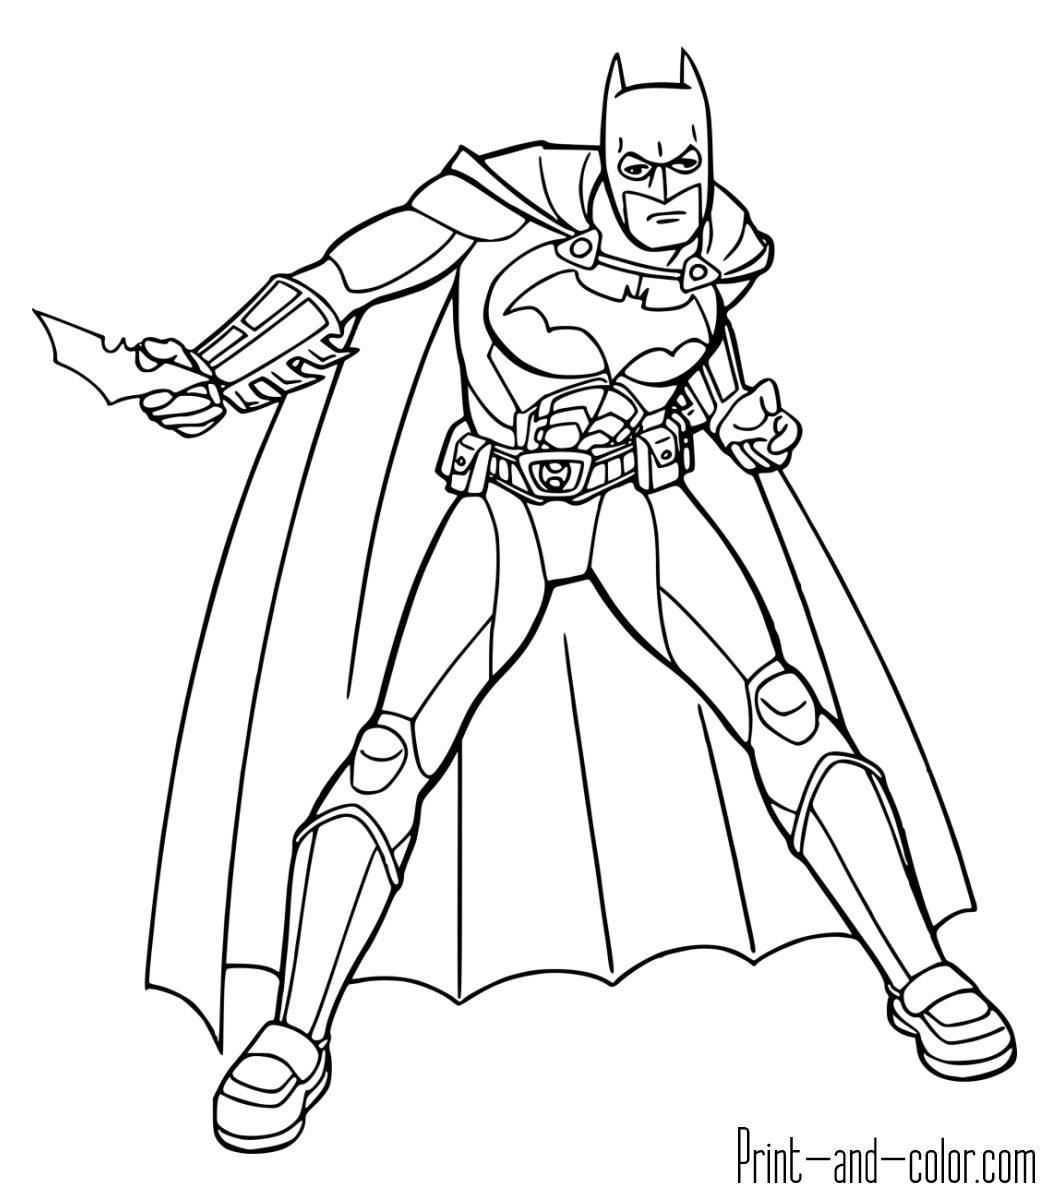 batman colouring sheet batman coloring pages print and colorcom colouring sheet batman